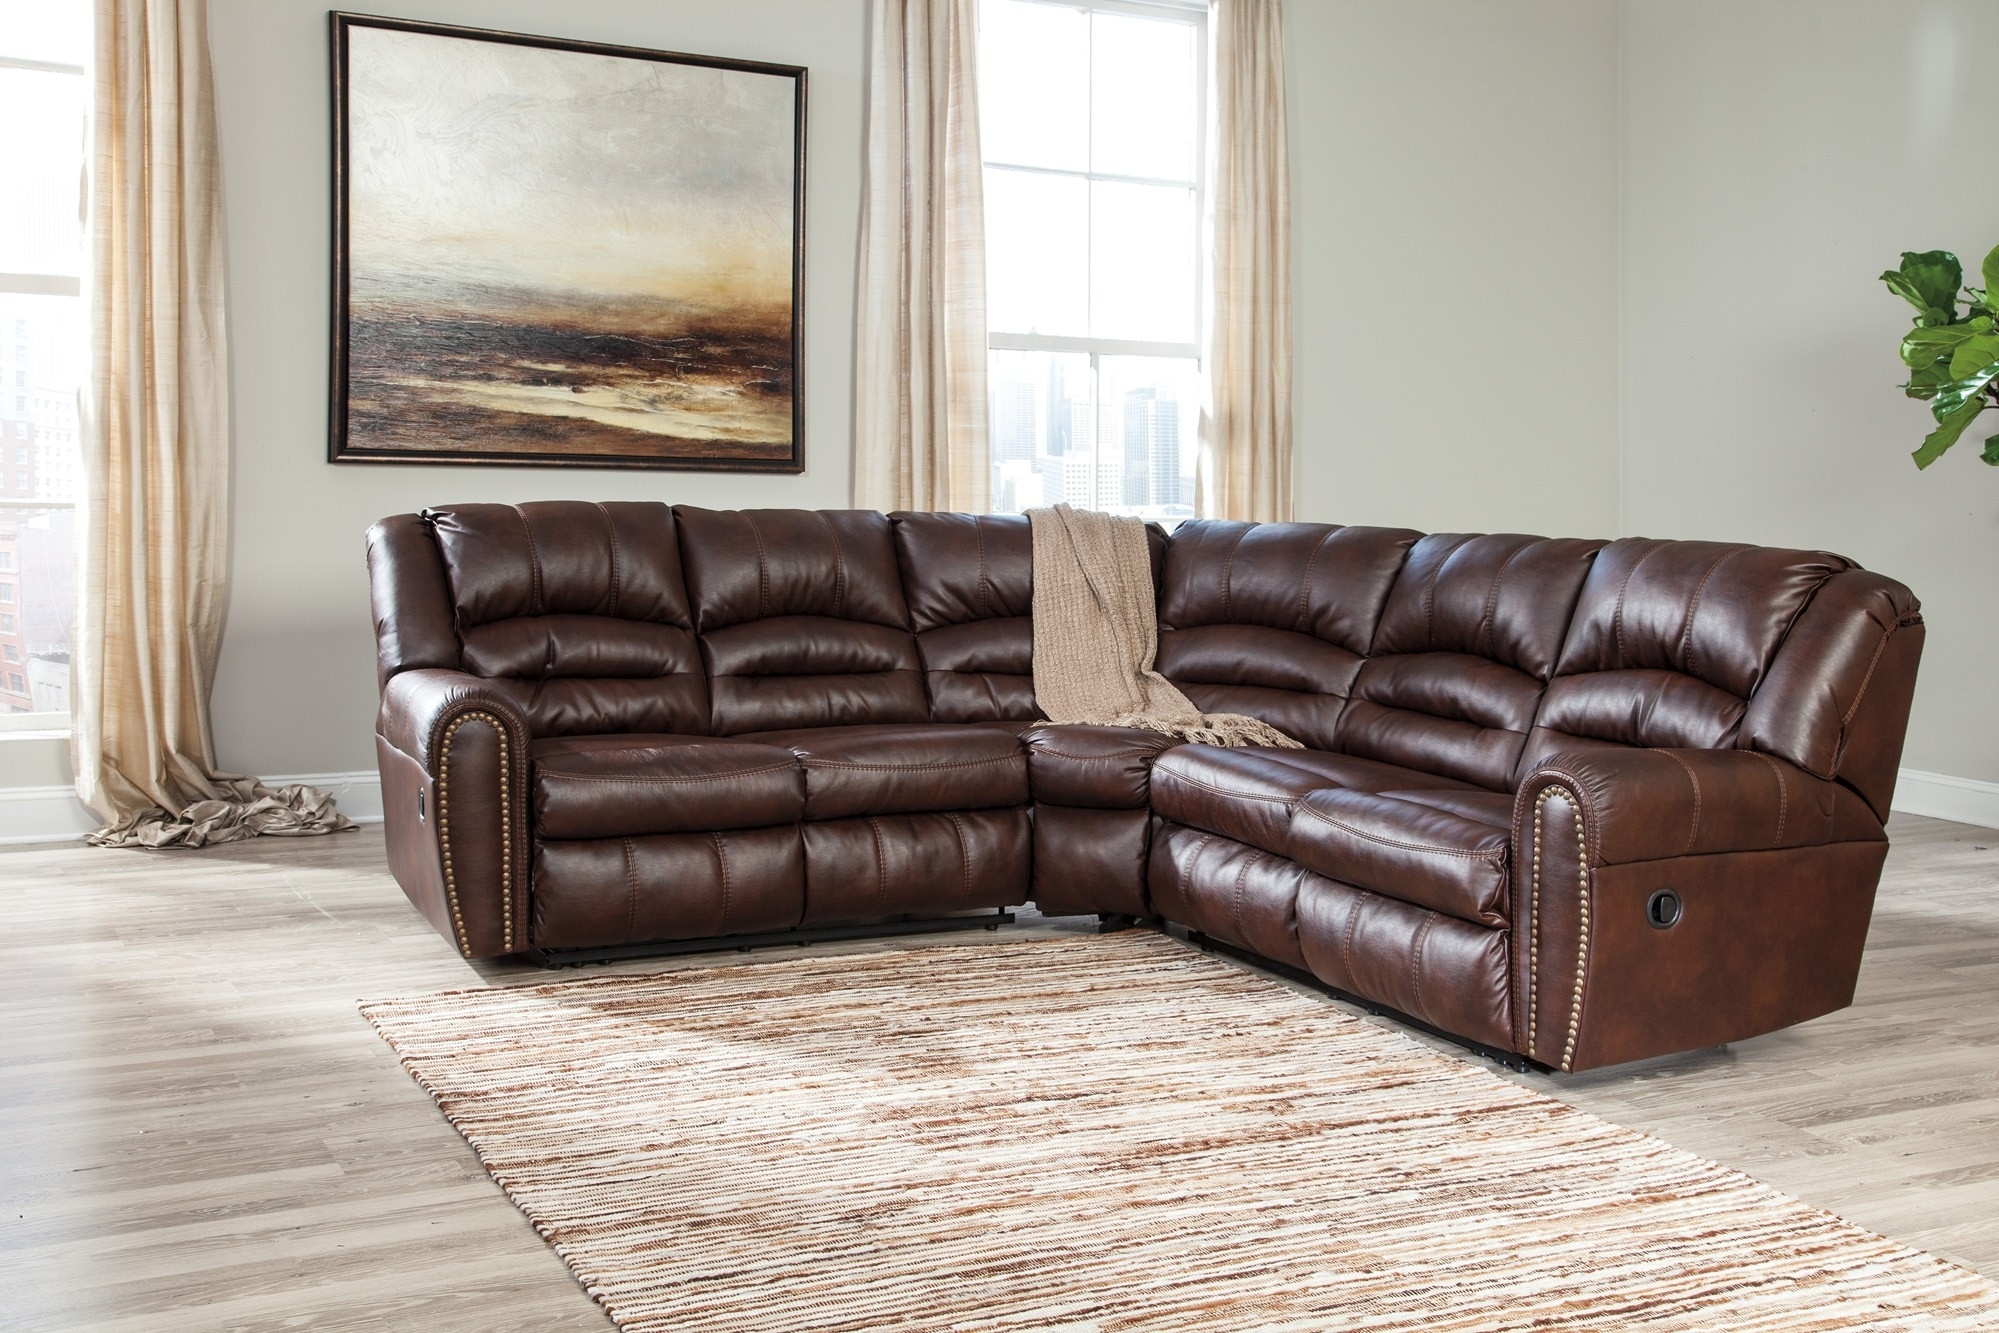 Manzanola Chocolate 2 Piece Sectional Sofa For $1, (Image 9 of 10)